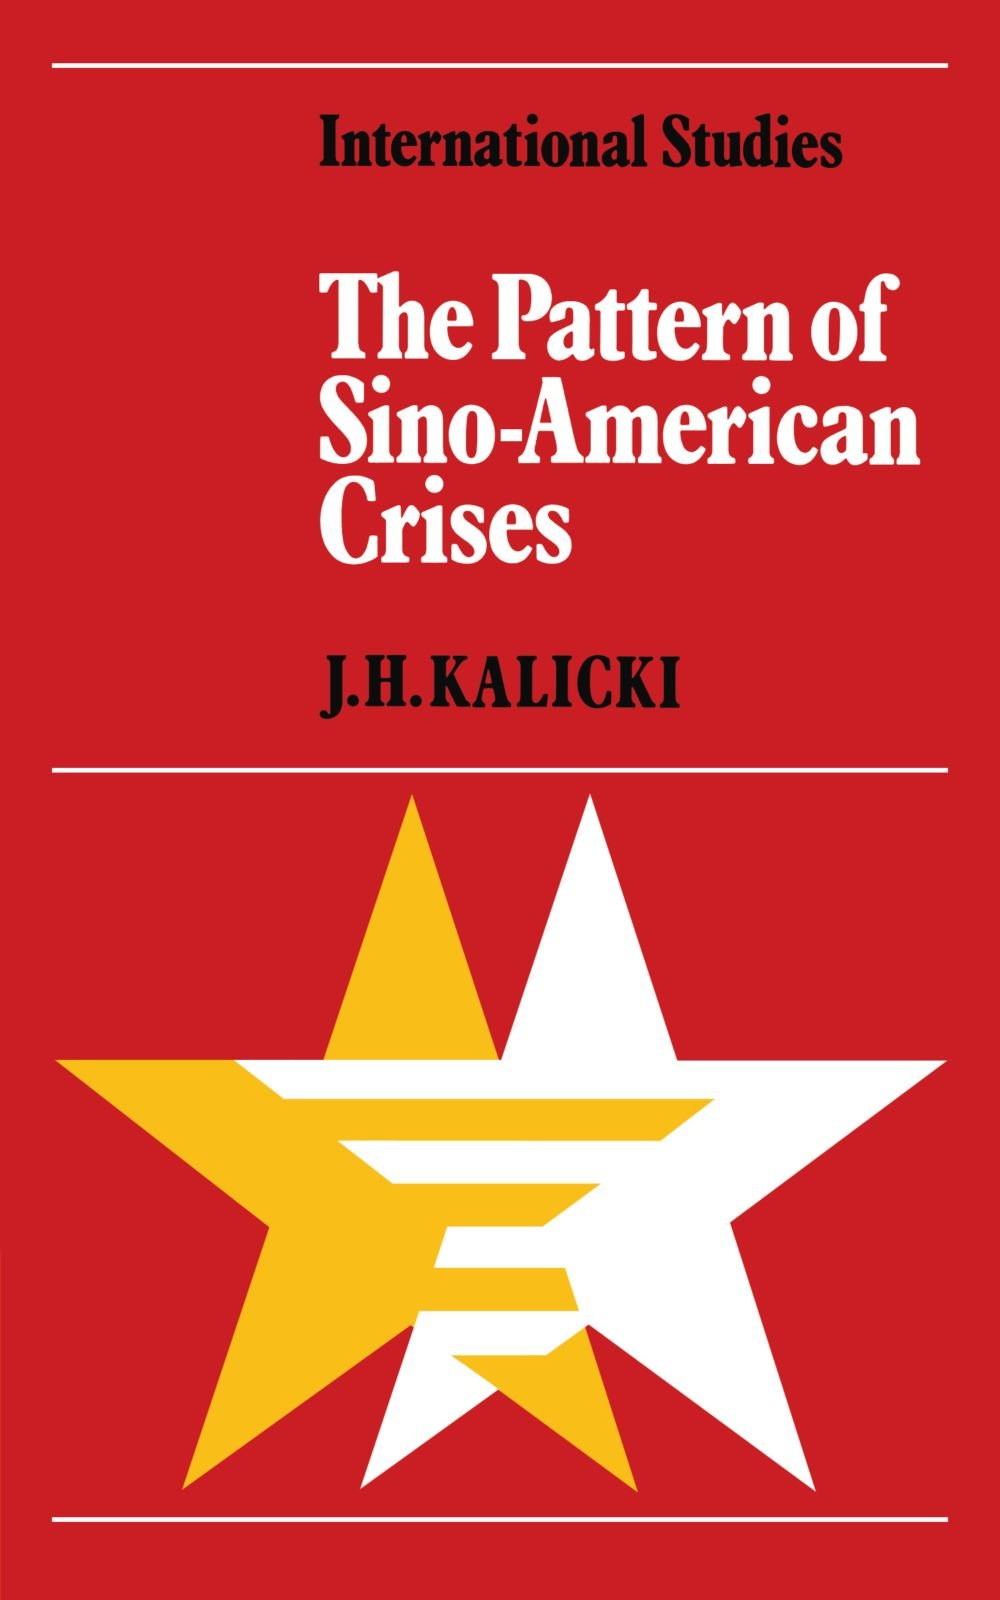 The Pattern of Sino-American Crises: Political-Military Interactions in the 1950s (LSE Monographs in International Studies) PDF